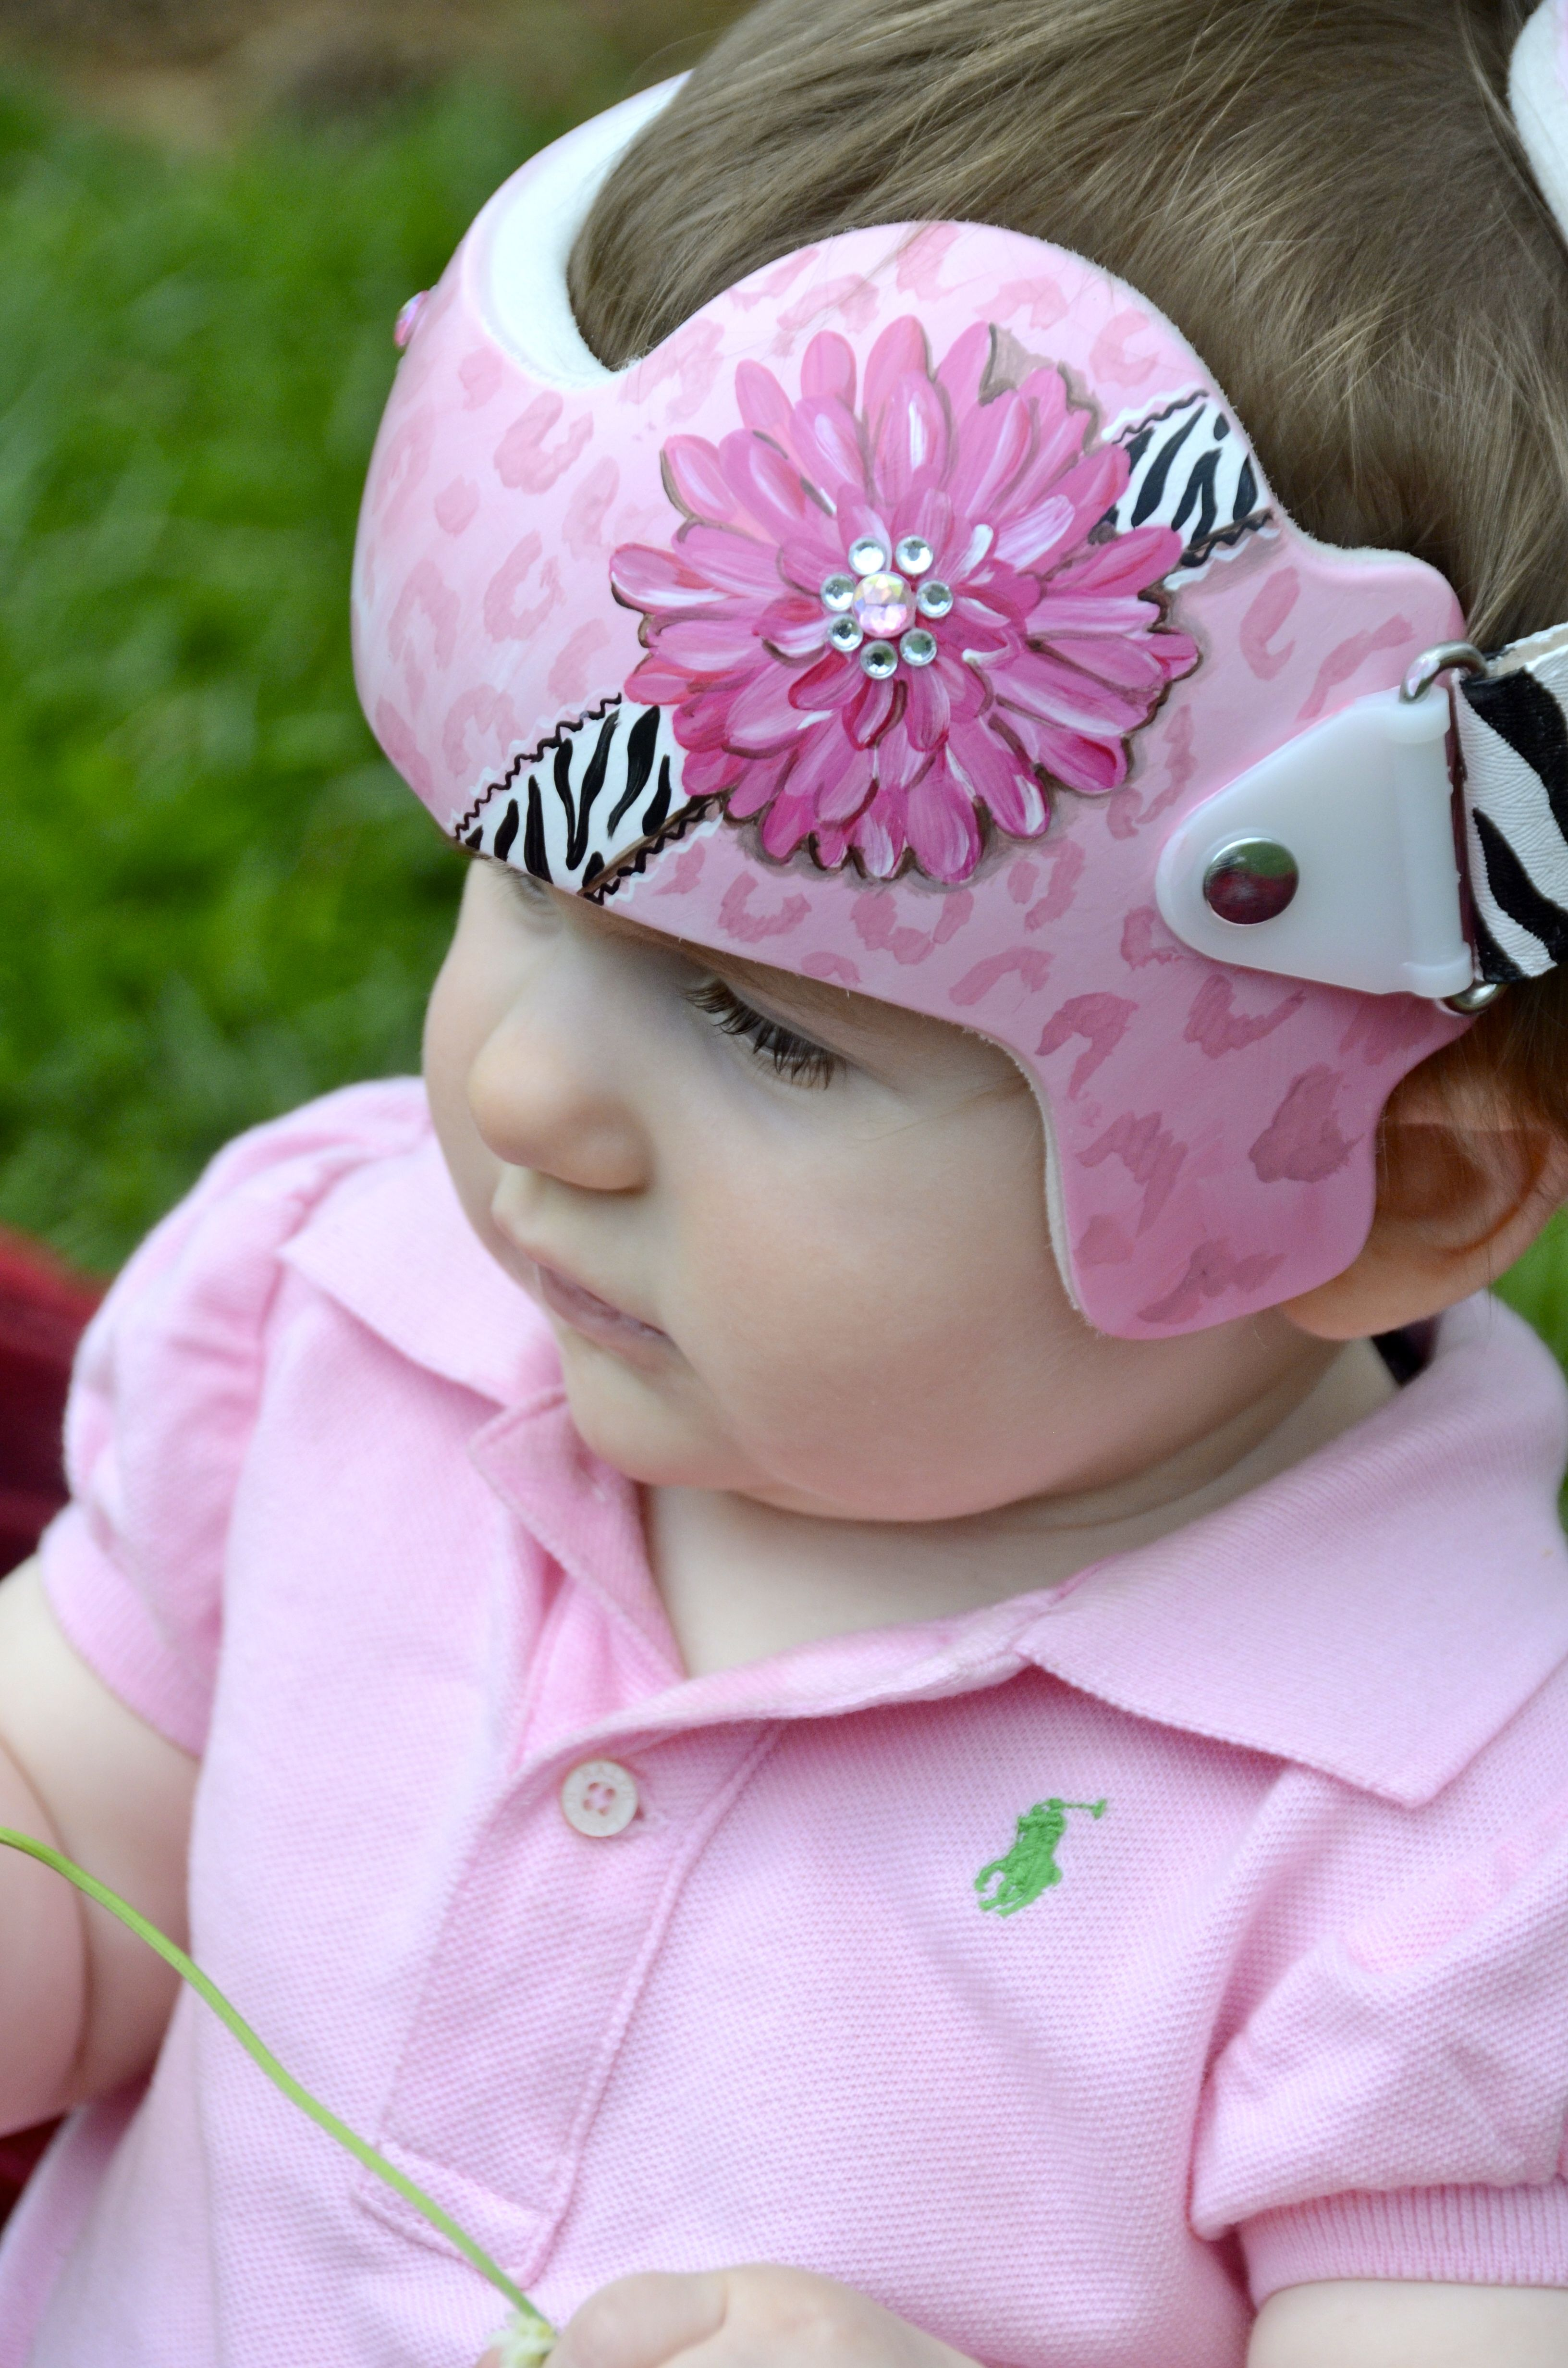 Velcro Bow To Baby Helmet For My Kids Pinterest Baby Helmet - Baby helmet decalsa family blog that takes you through the experience of a baby with